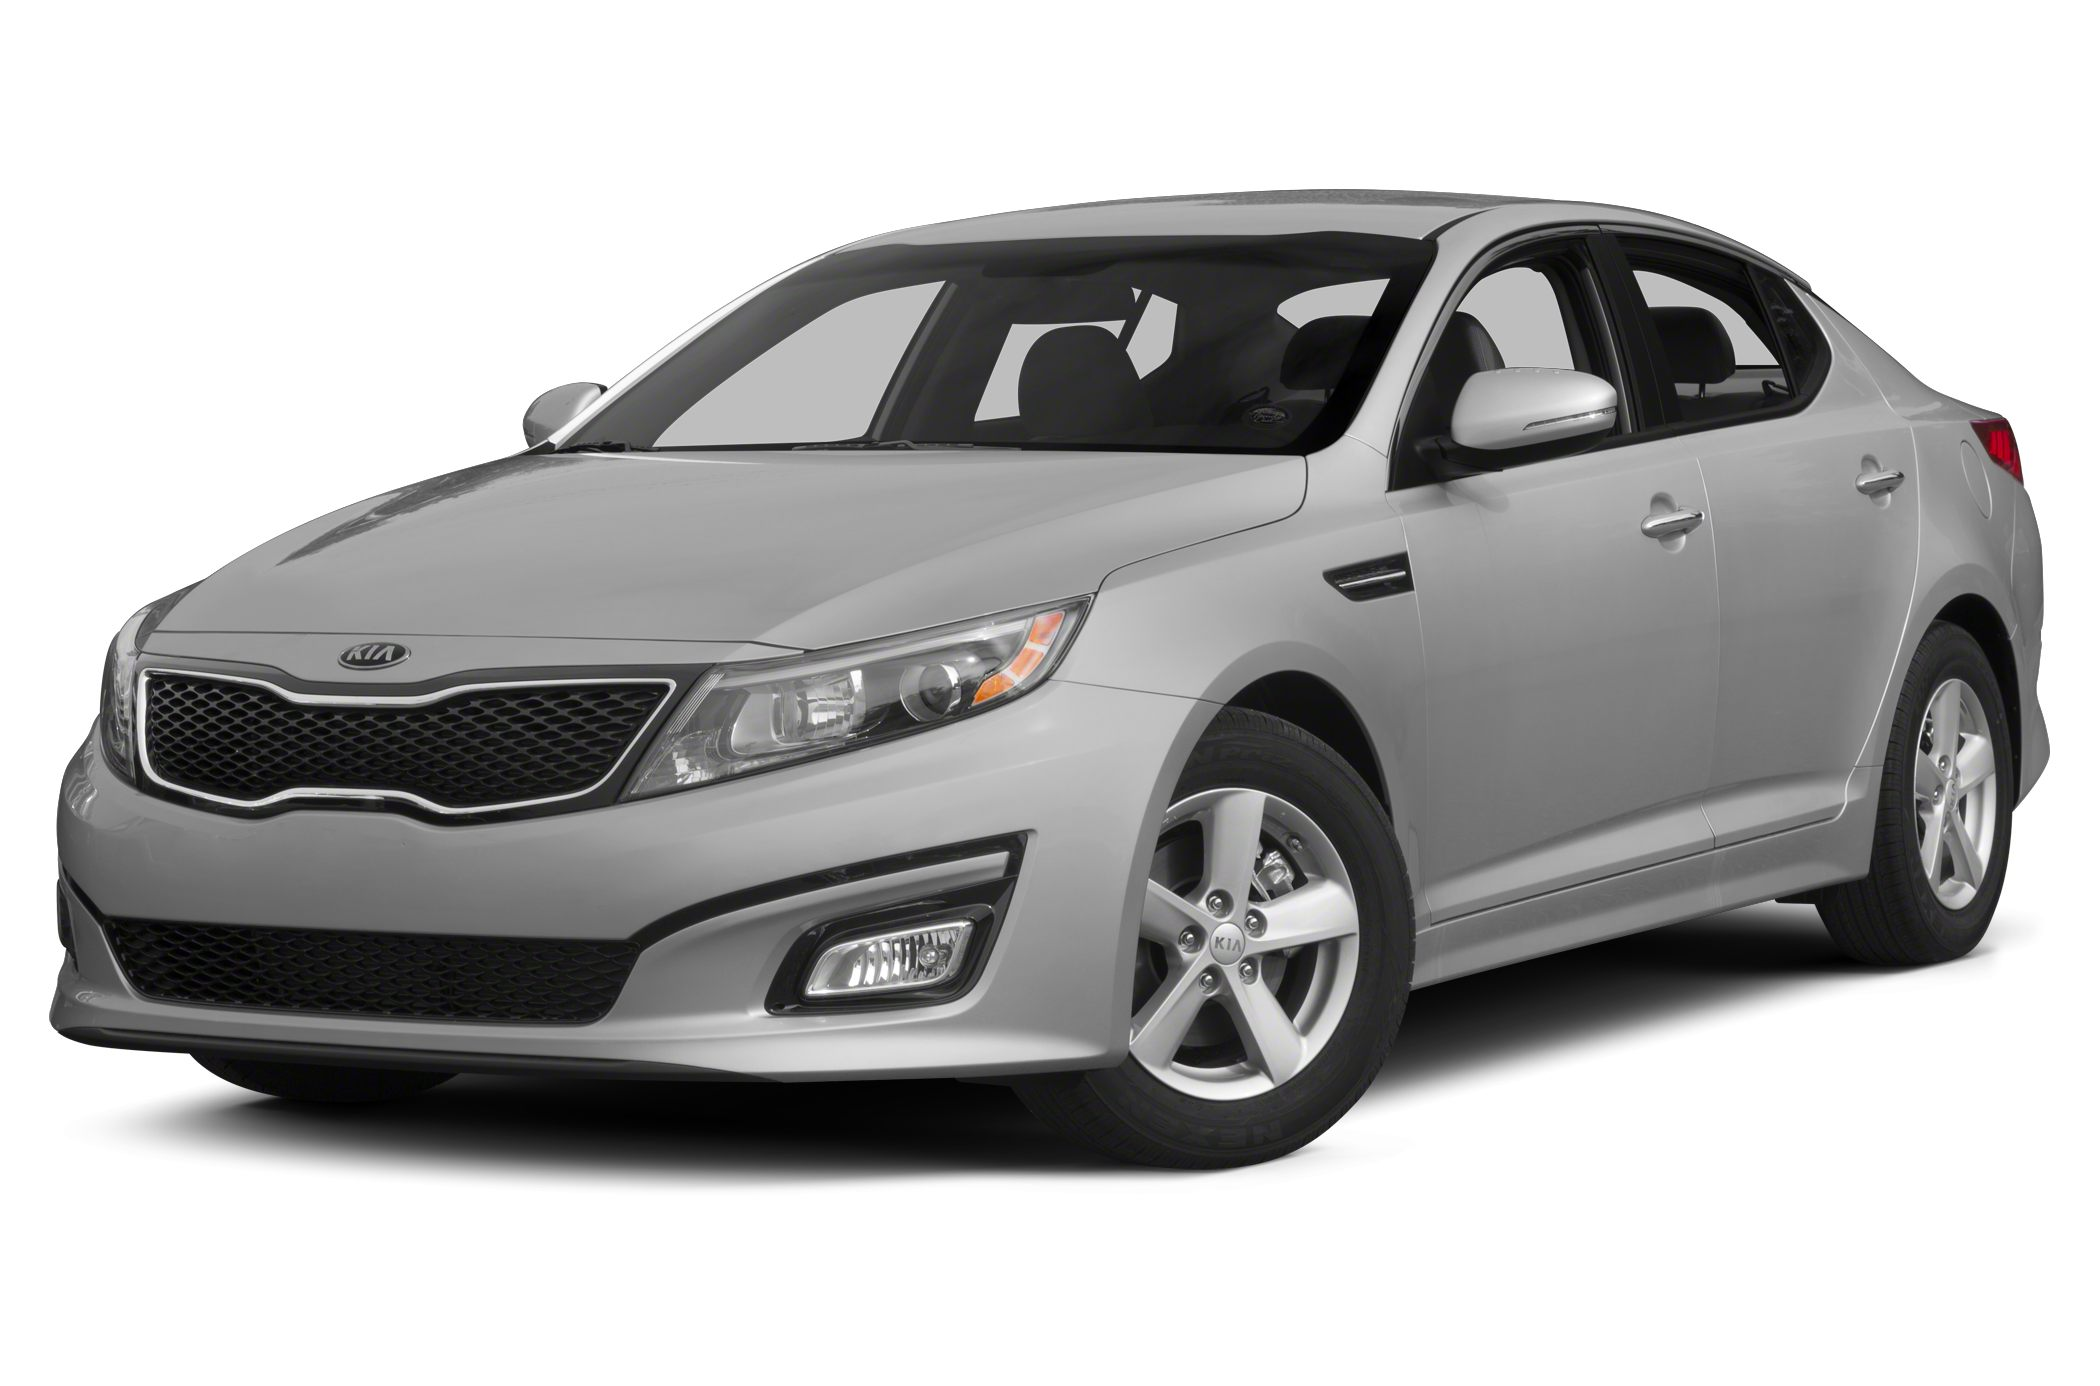 2014 Kia Optima LX New Arrival CarFax One Owner This Kia Optima is CERTIFIED Low miles for a 20